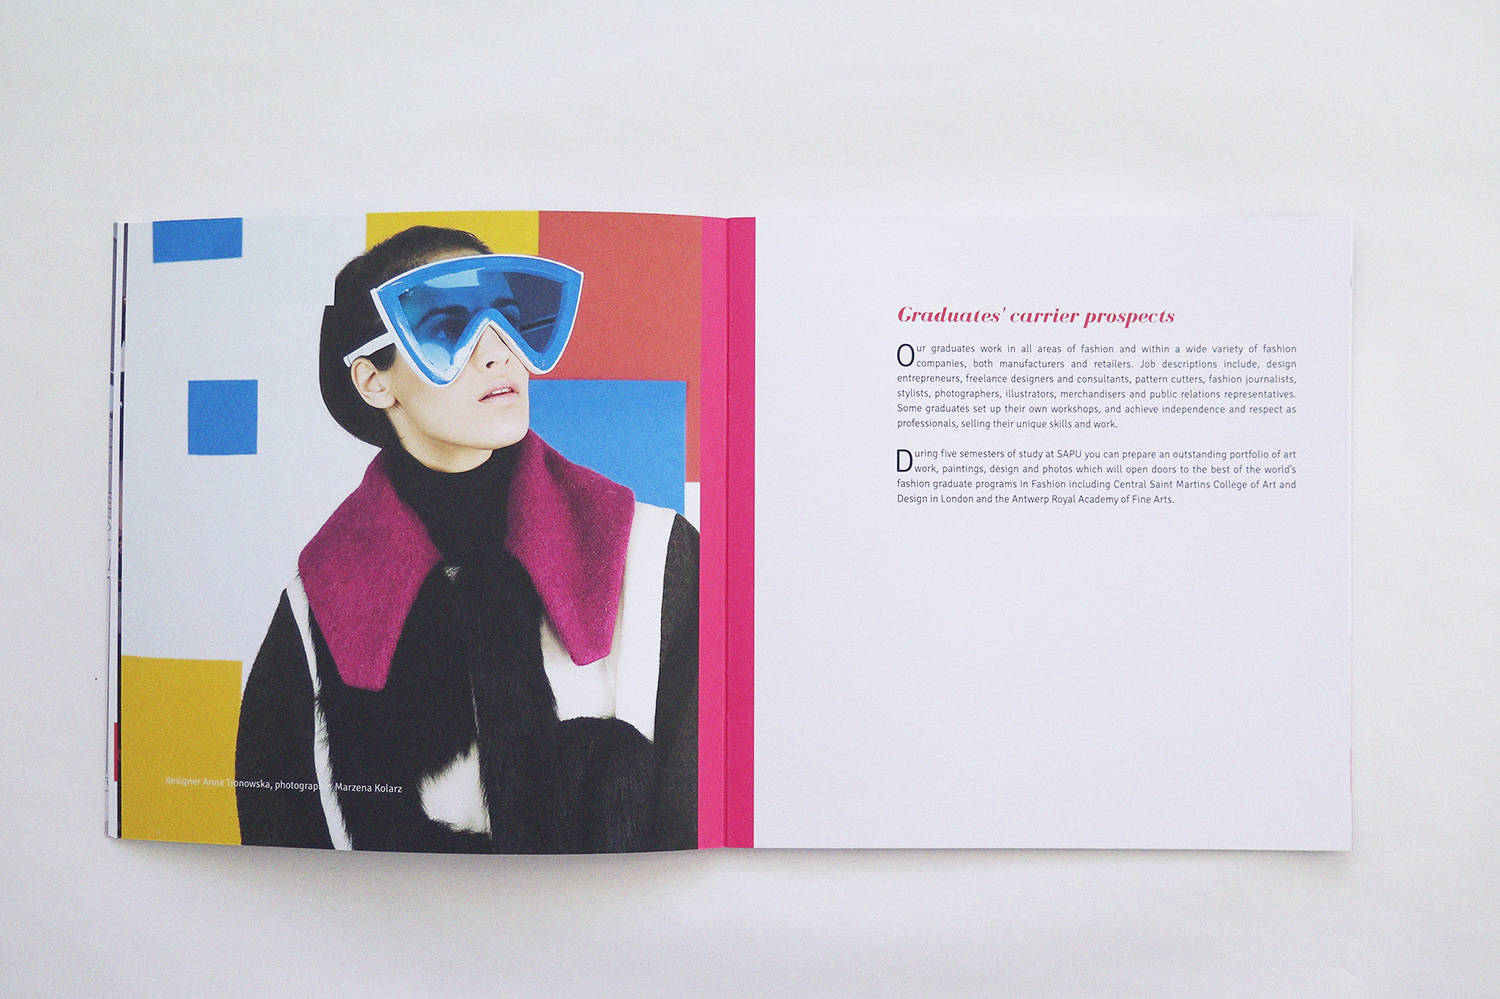 cracow school of art and fashion design brochure by nina gregier (5)